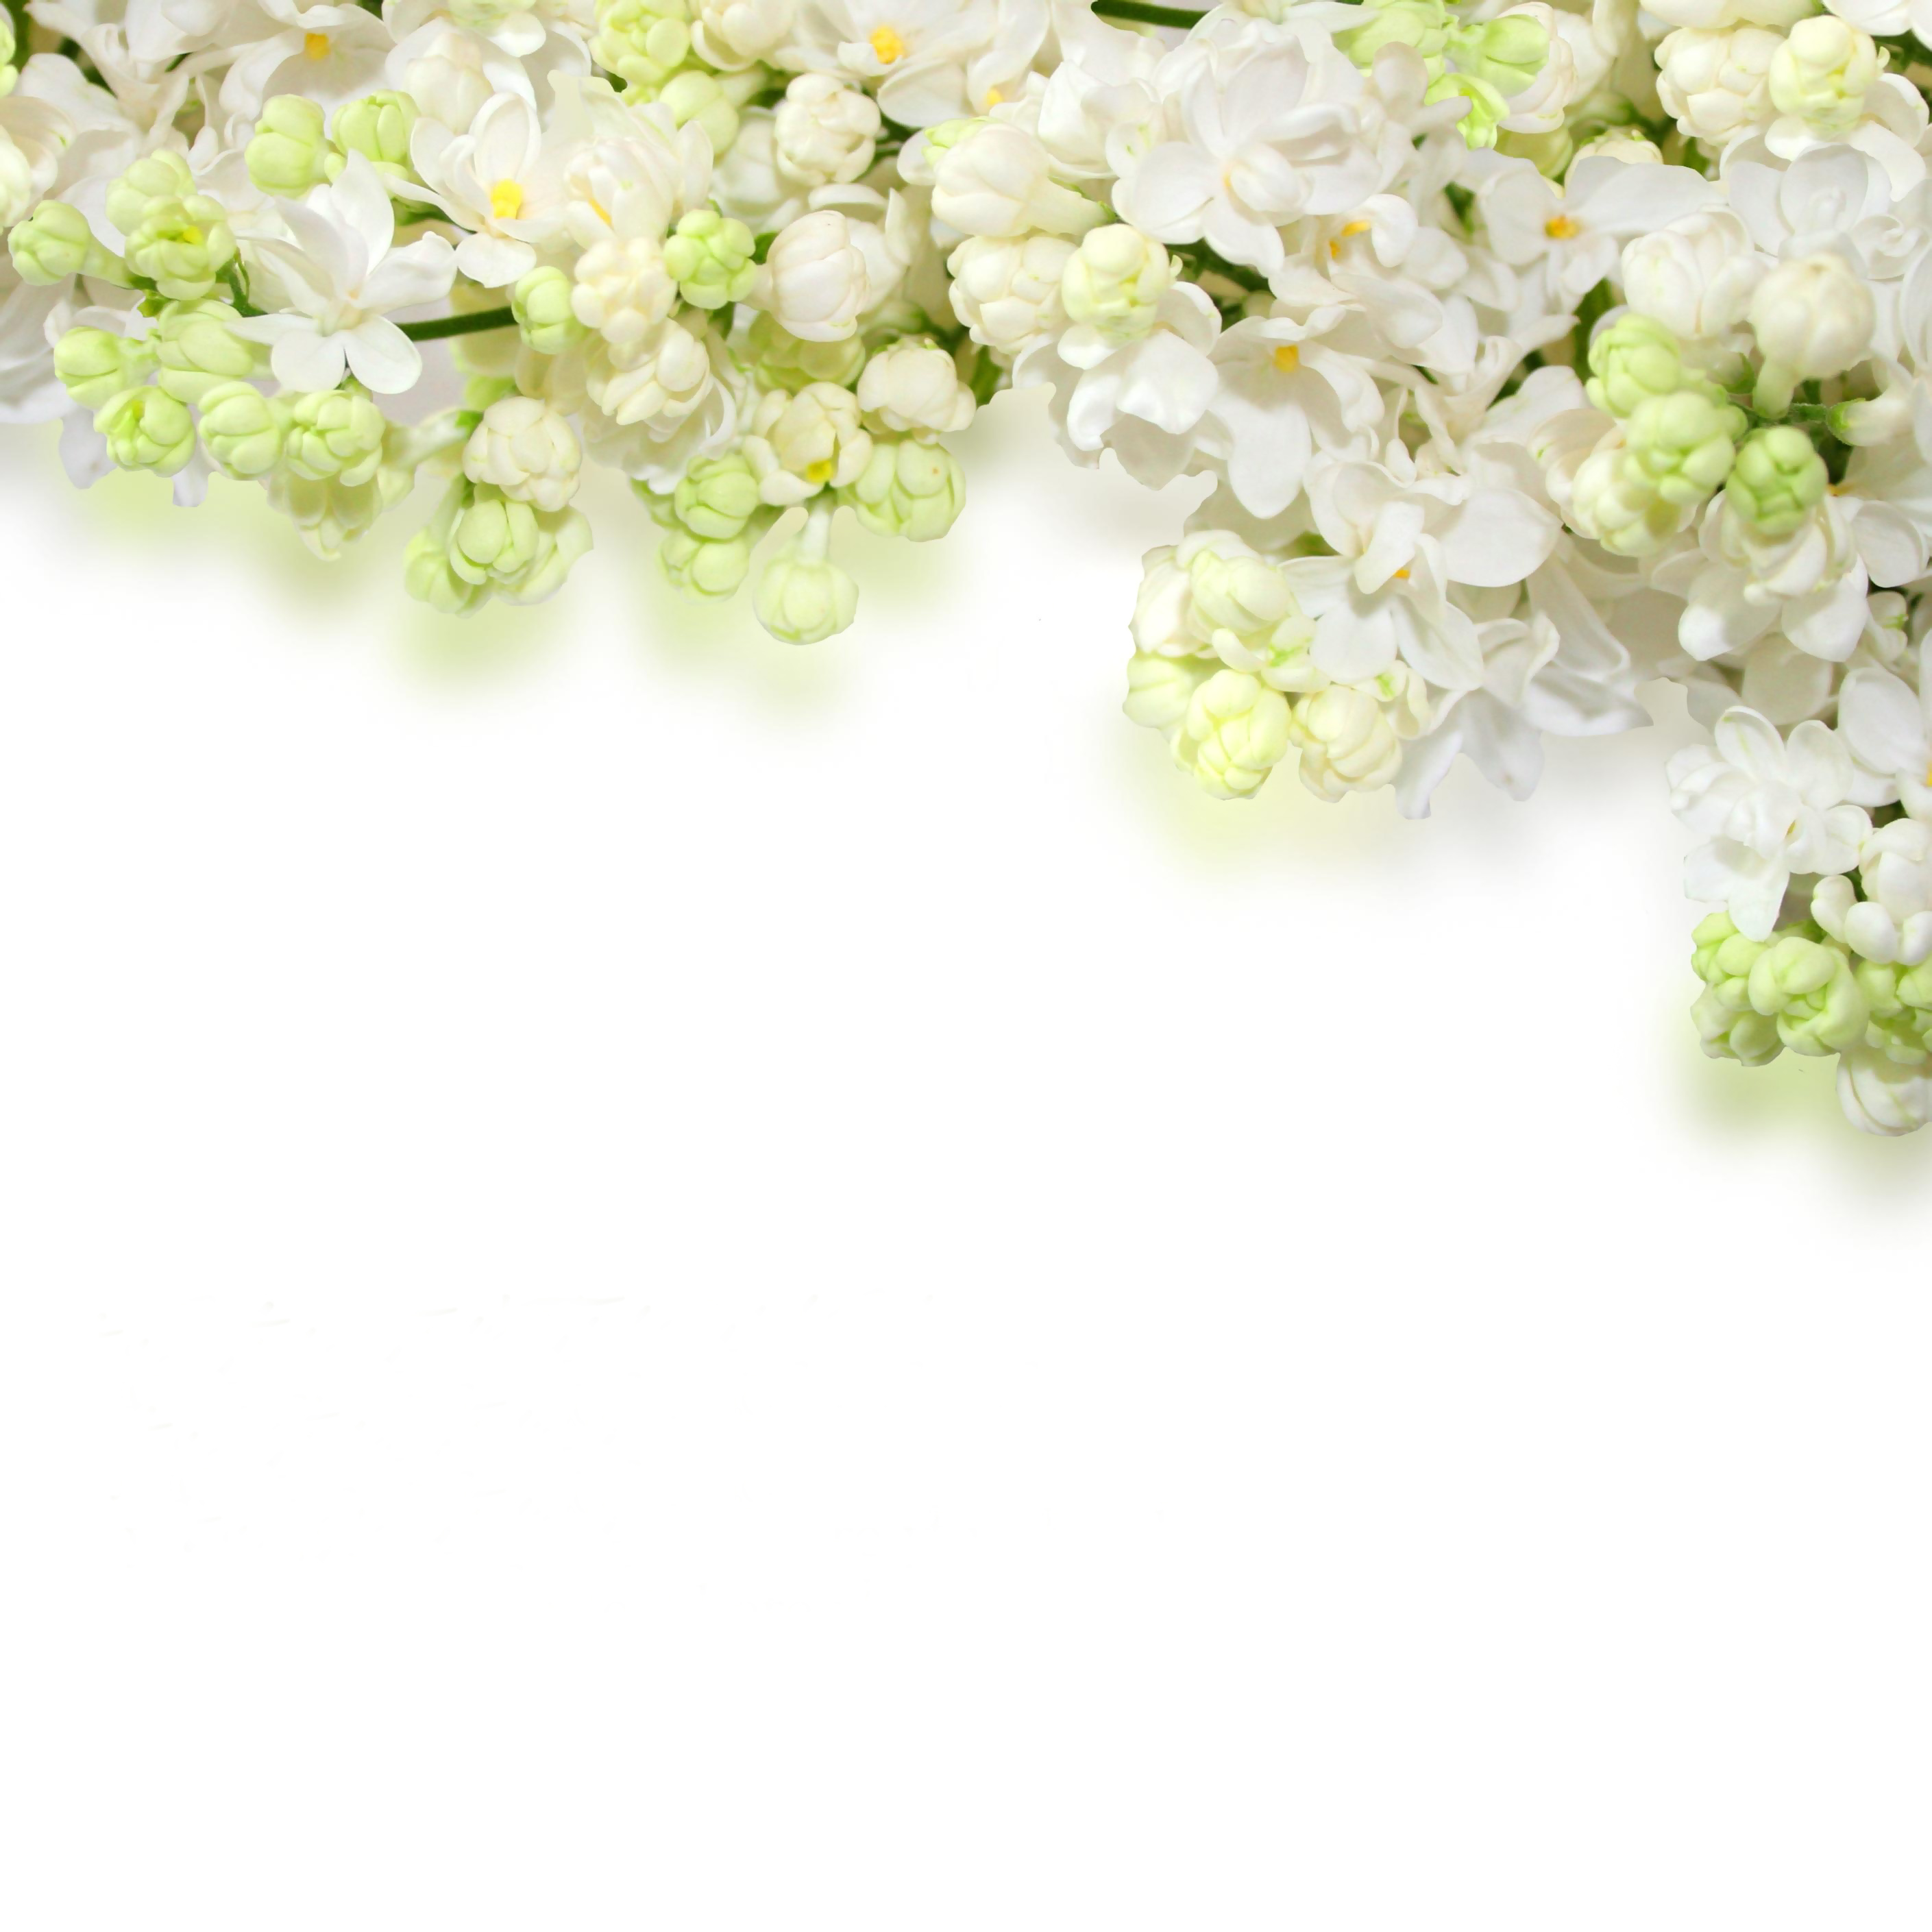 Free Photo White Flower Background Abstract Bloom Blossom